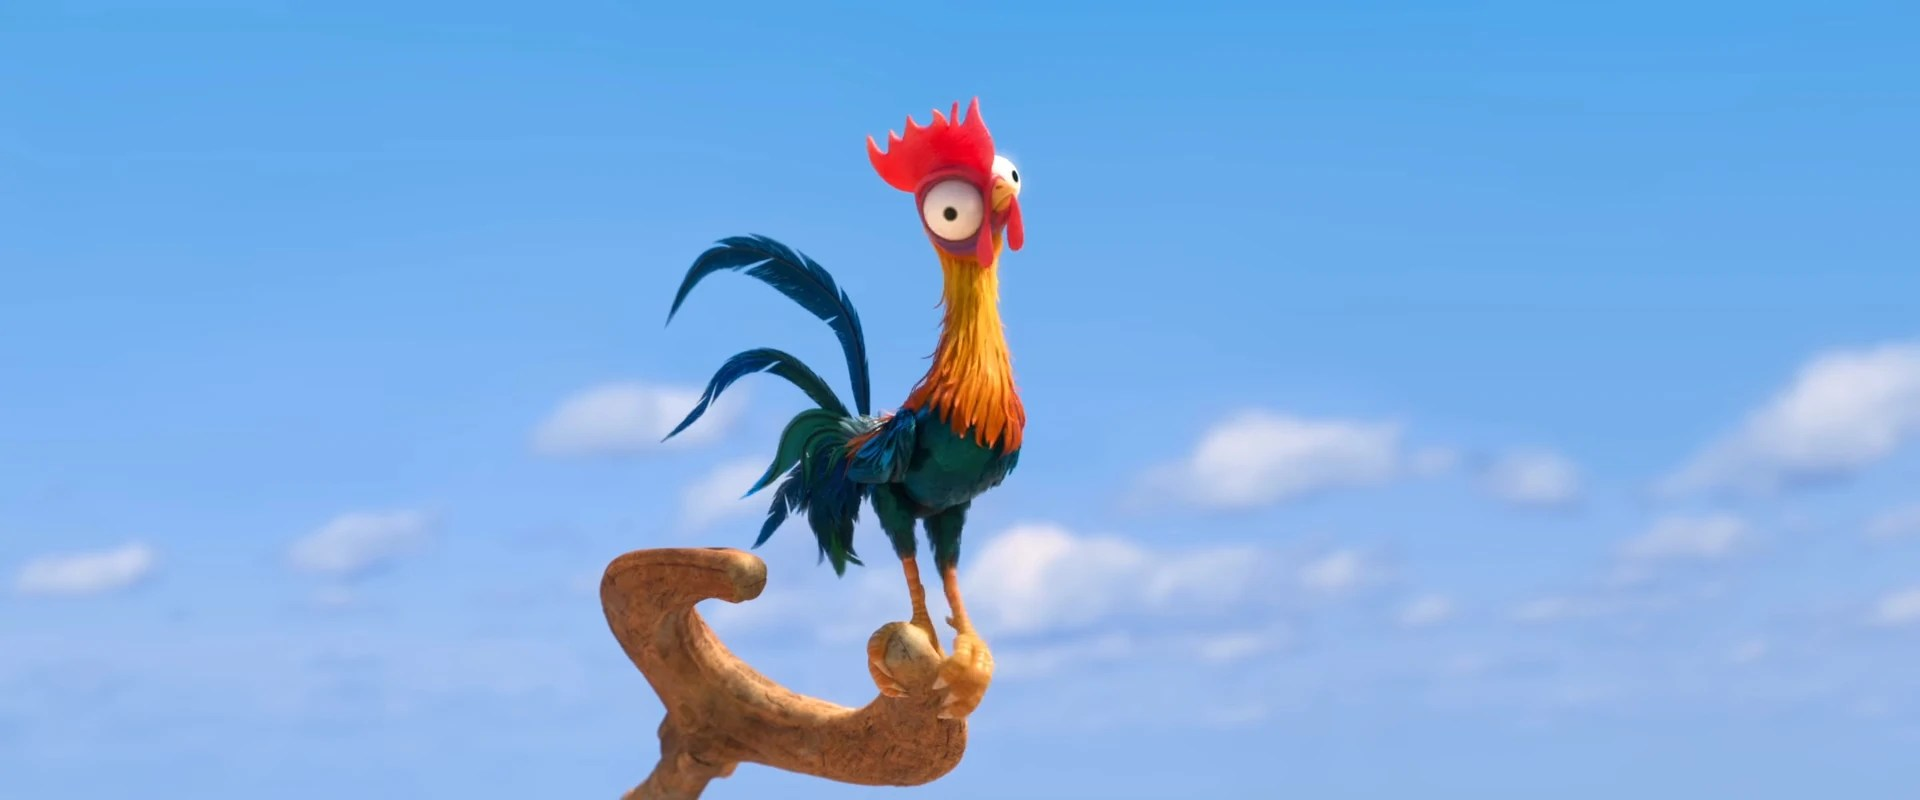 Chicken Quote Hd Wallpaper Heihei Moana Wikia Fandom Powered By Wikia